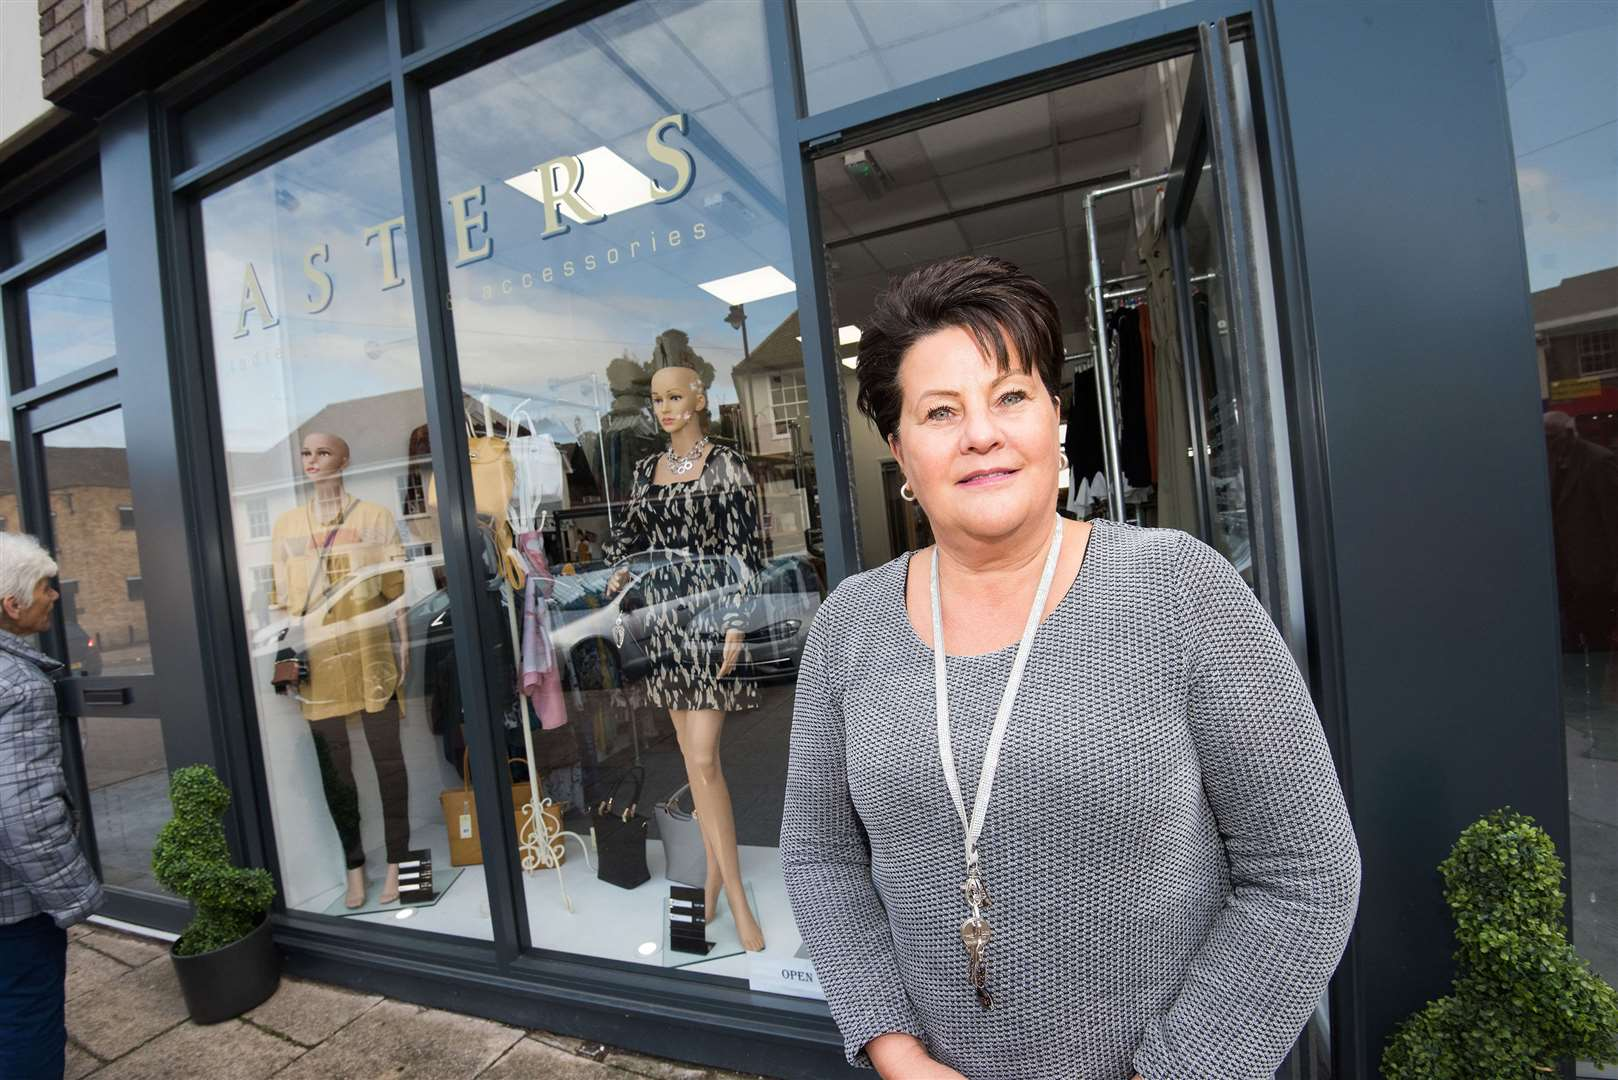 SUDBURY: New shop.Asters, Old Market Place, Sudbury, Suffolk .Asters, a new ladies' clothing and accessories shop, opened at the the site of the old Post Office building in Sudbury on Friday, September 27, 2019..store owner Bridget Baldwin at the shop. Picture Mark Westley. (18275226)